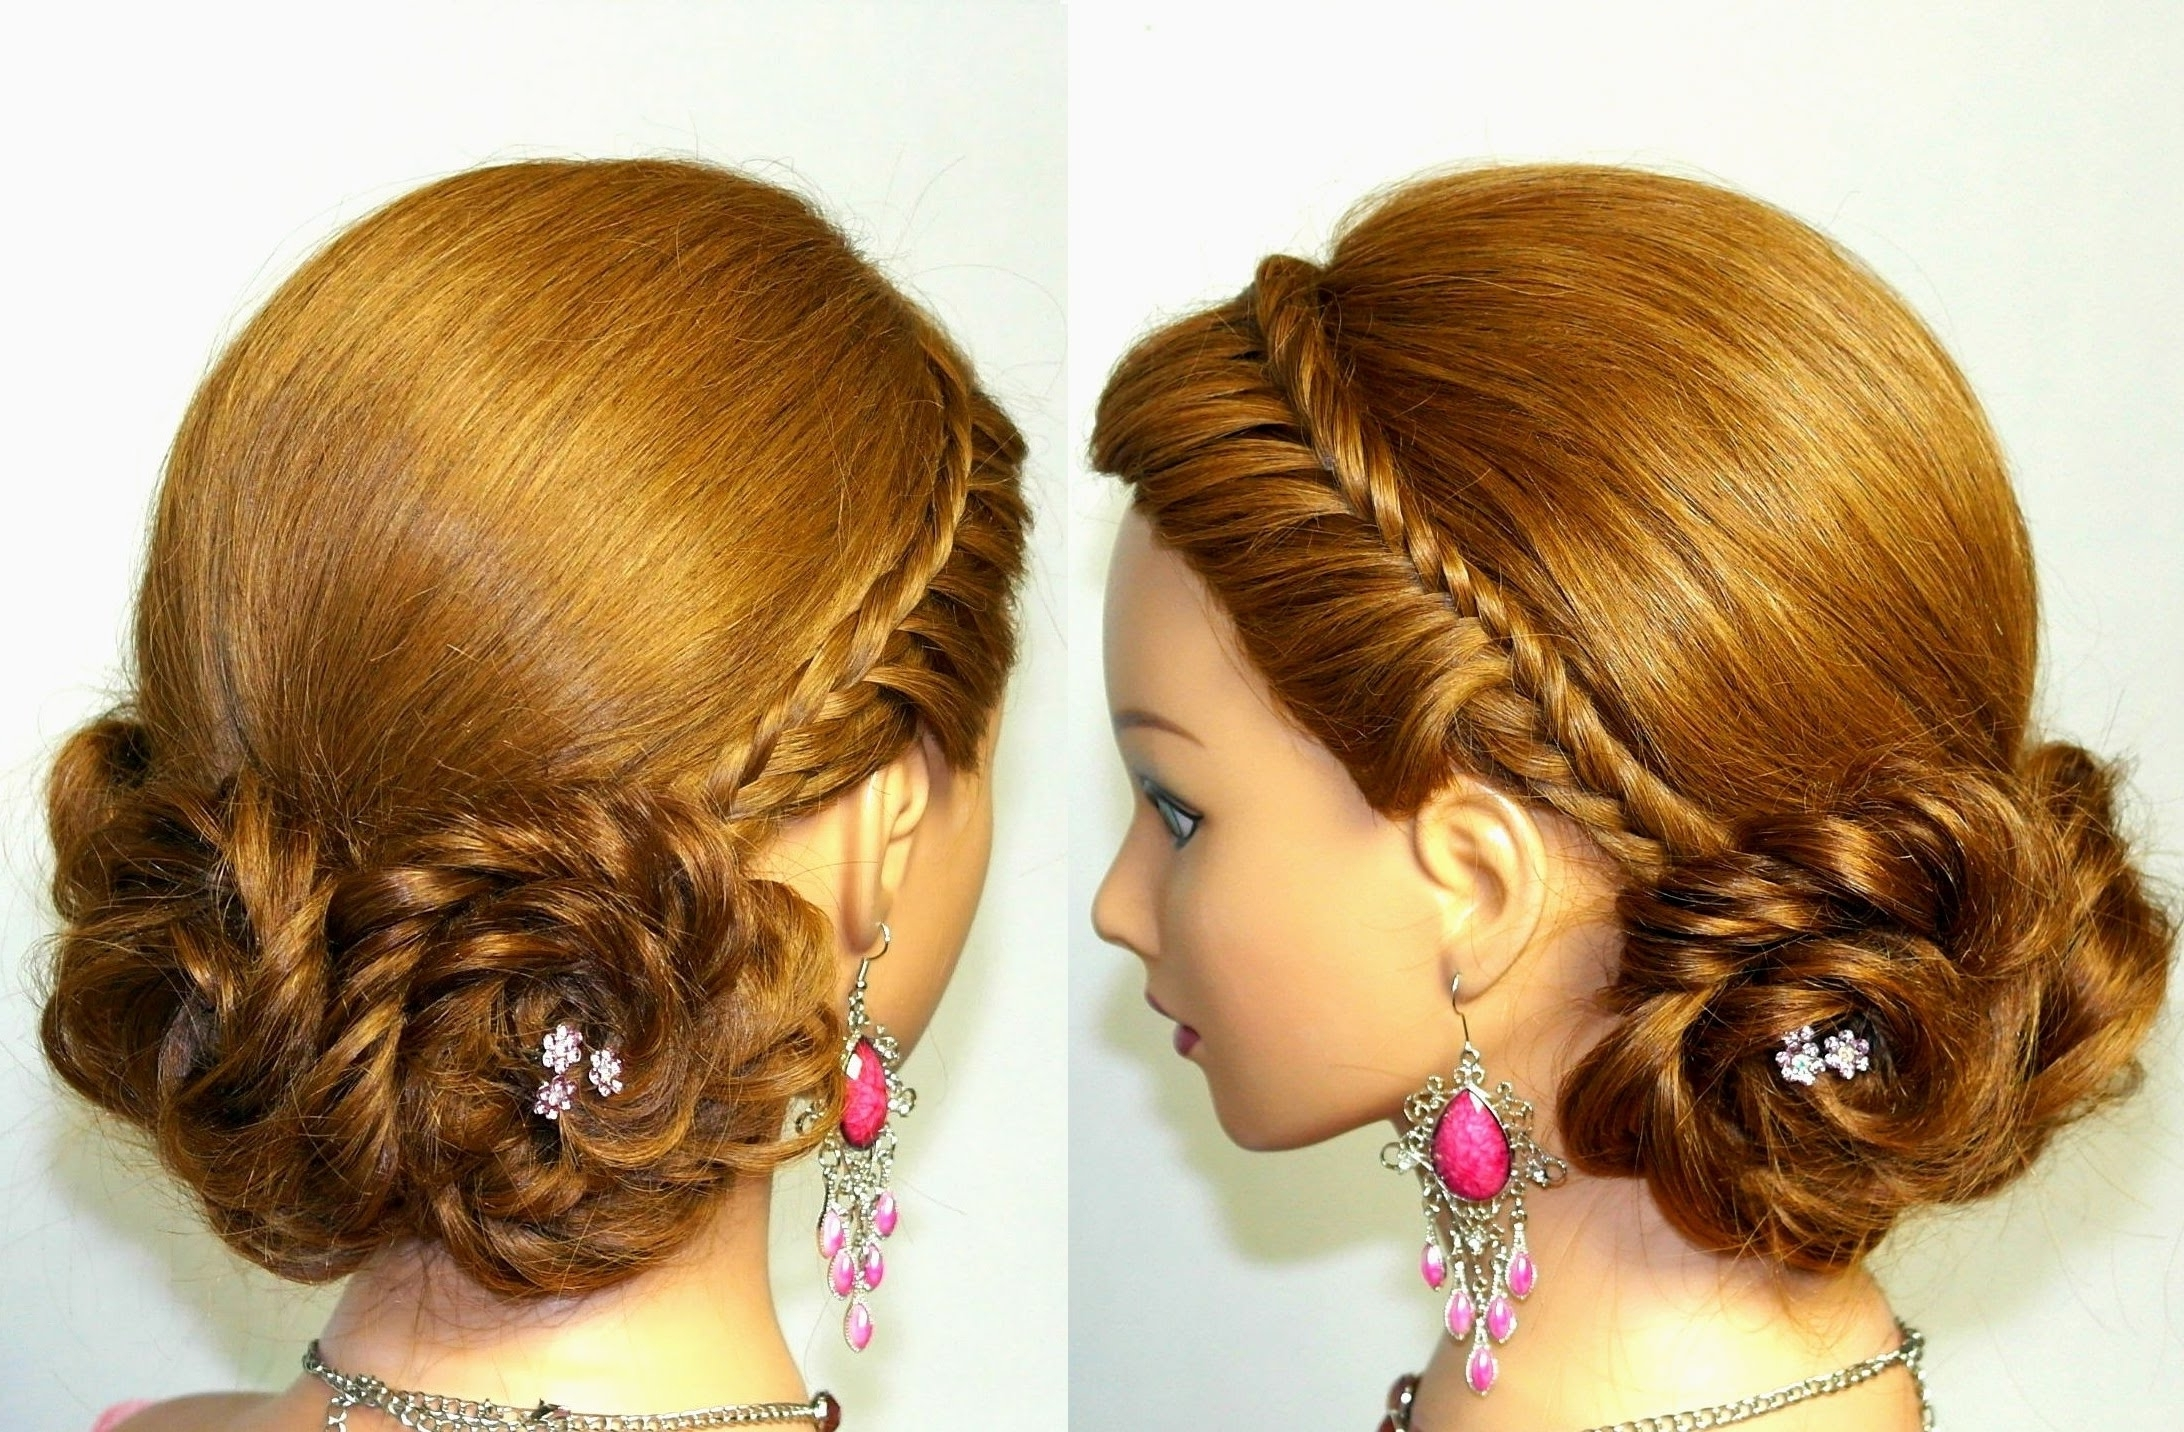 Braided Updo Hairstyles For Long Hair Prom Bridal Hairstyle For Long Within Braided Updo Hairstyles For Long Hair (View 9 of 15)